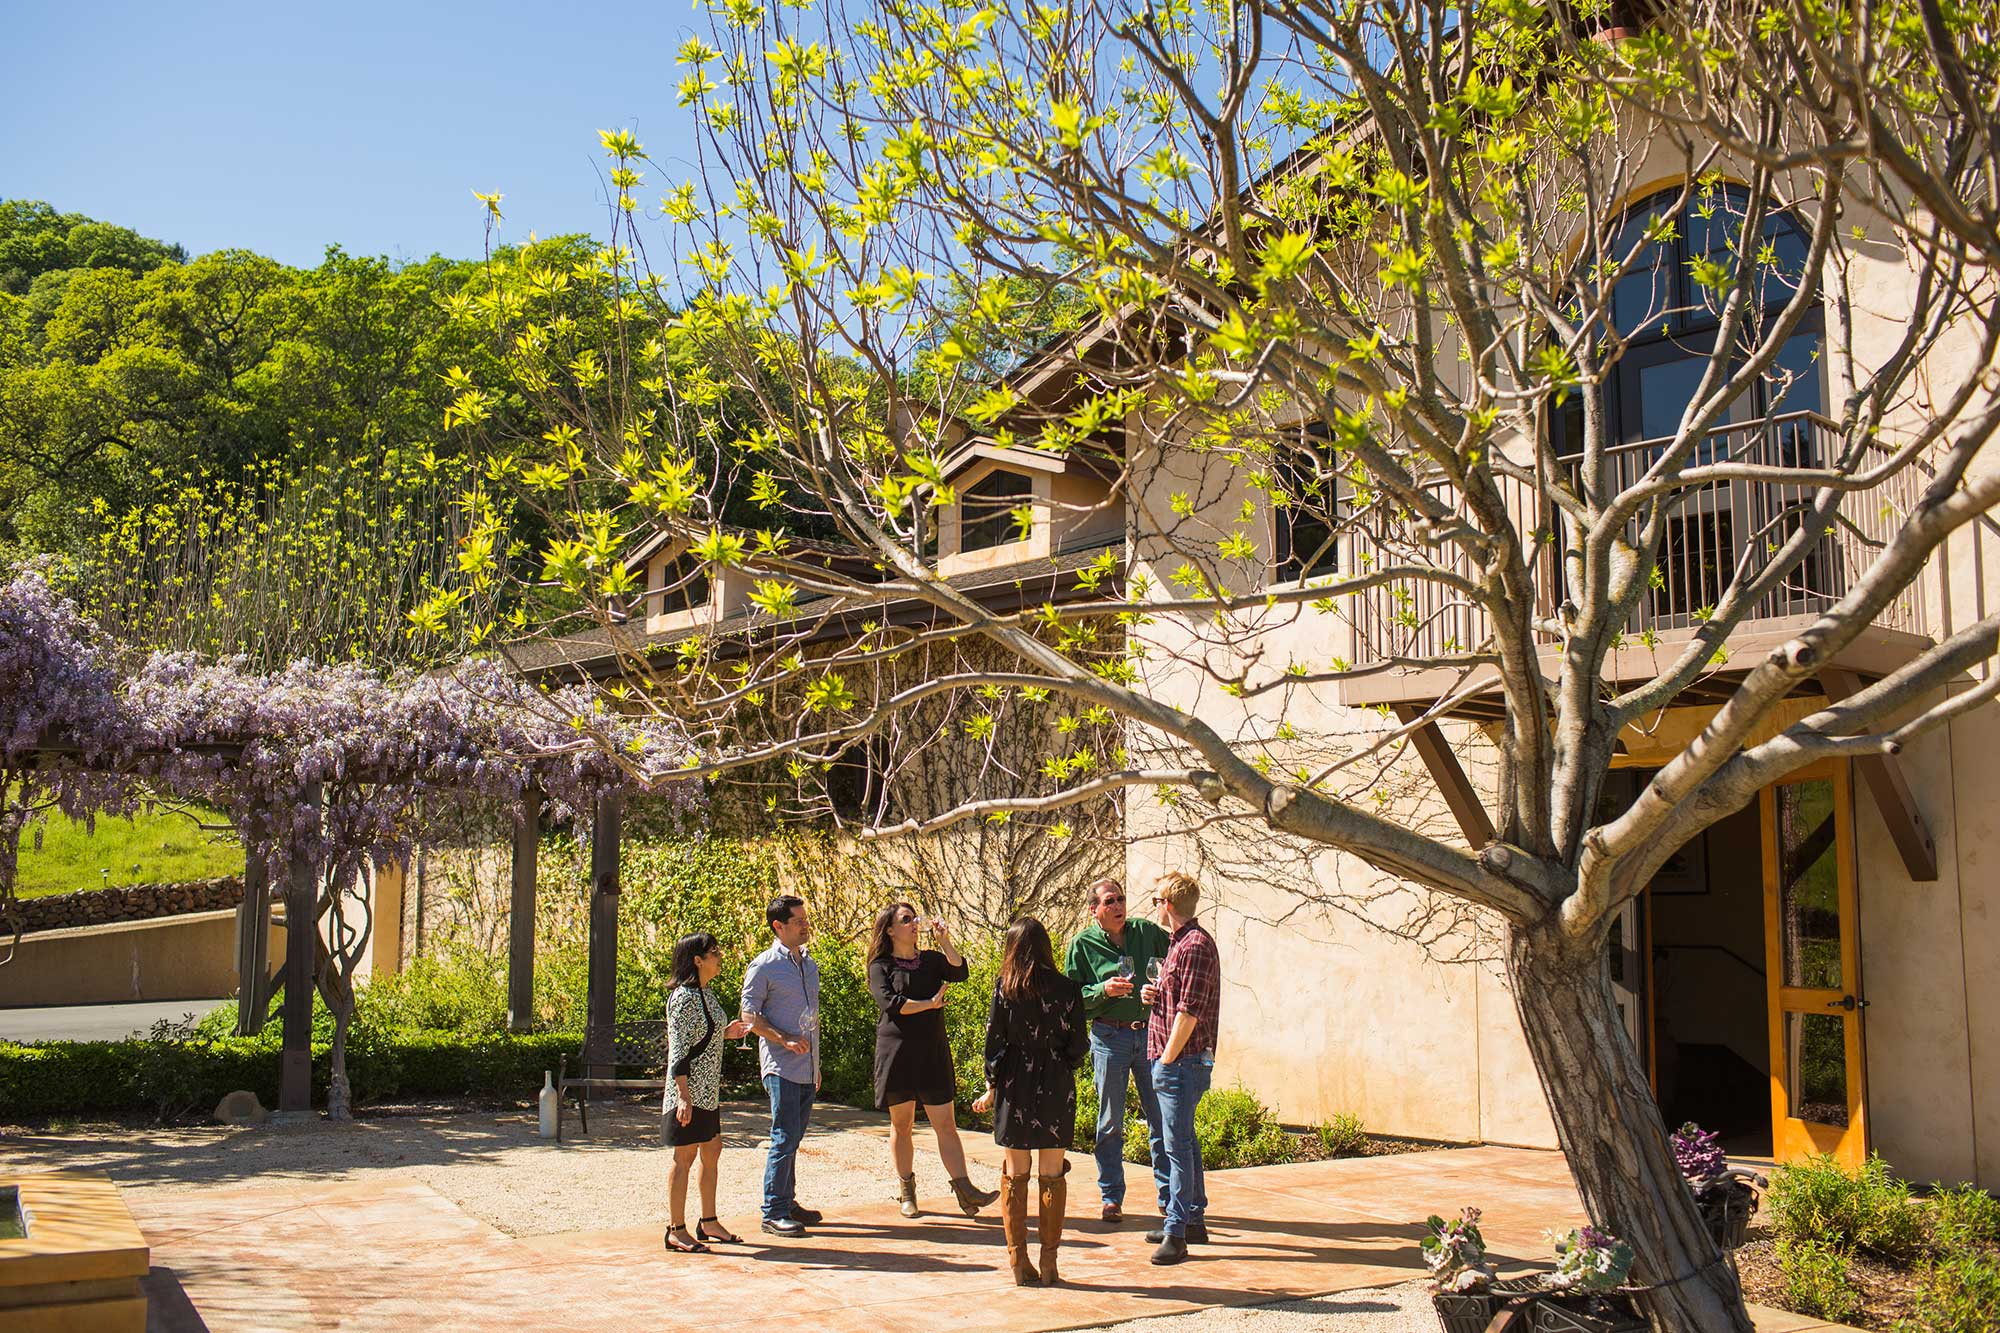 The grounds at Keever Vineyards in Yountville, California